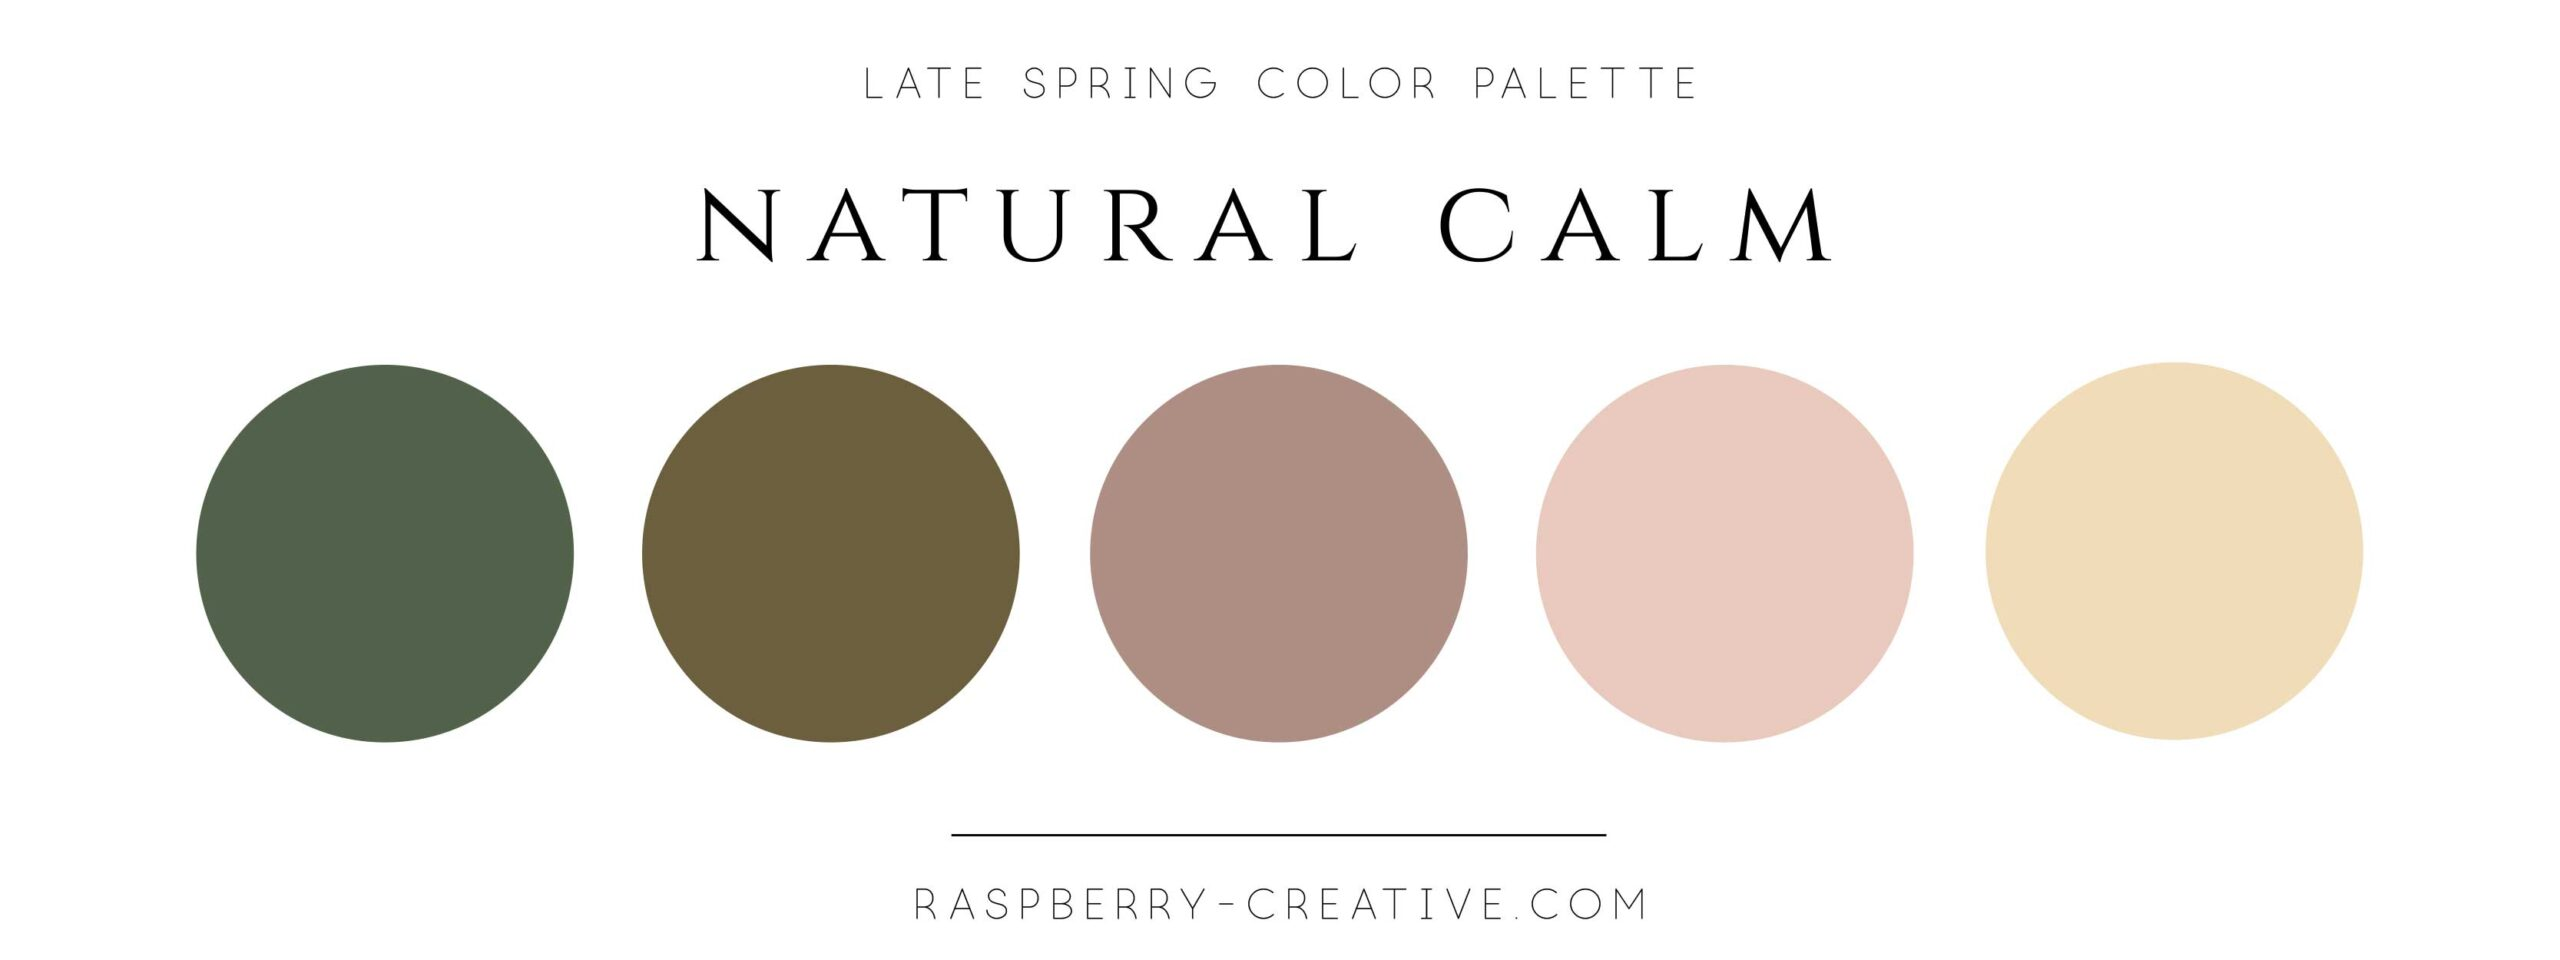 earthy calm late spring color palette